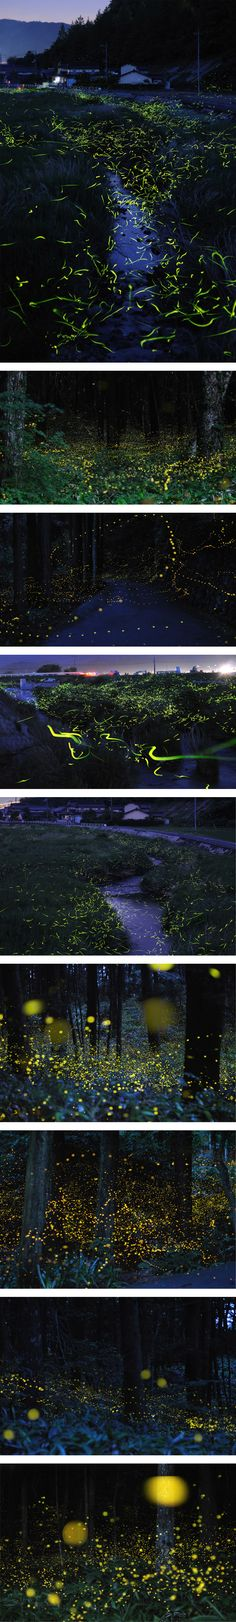 un shooting photo en « time-lapse » (pause longue) de lucioles dans un village au Japon.